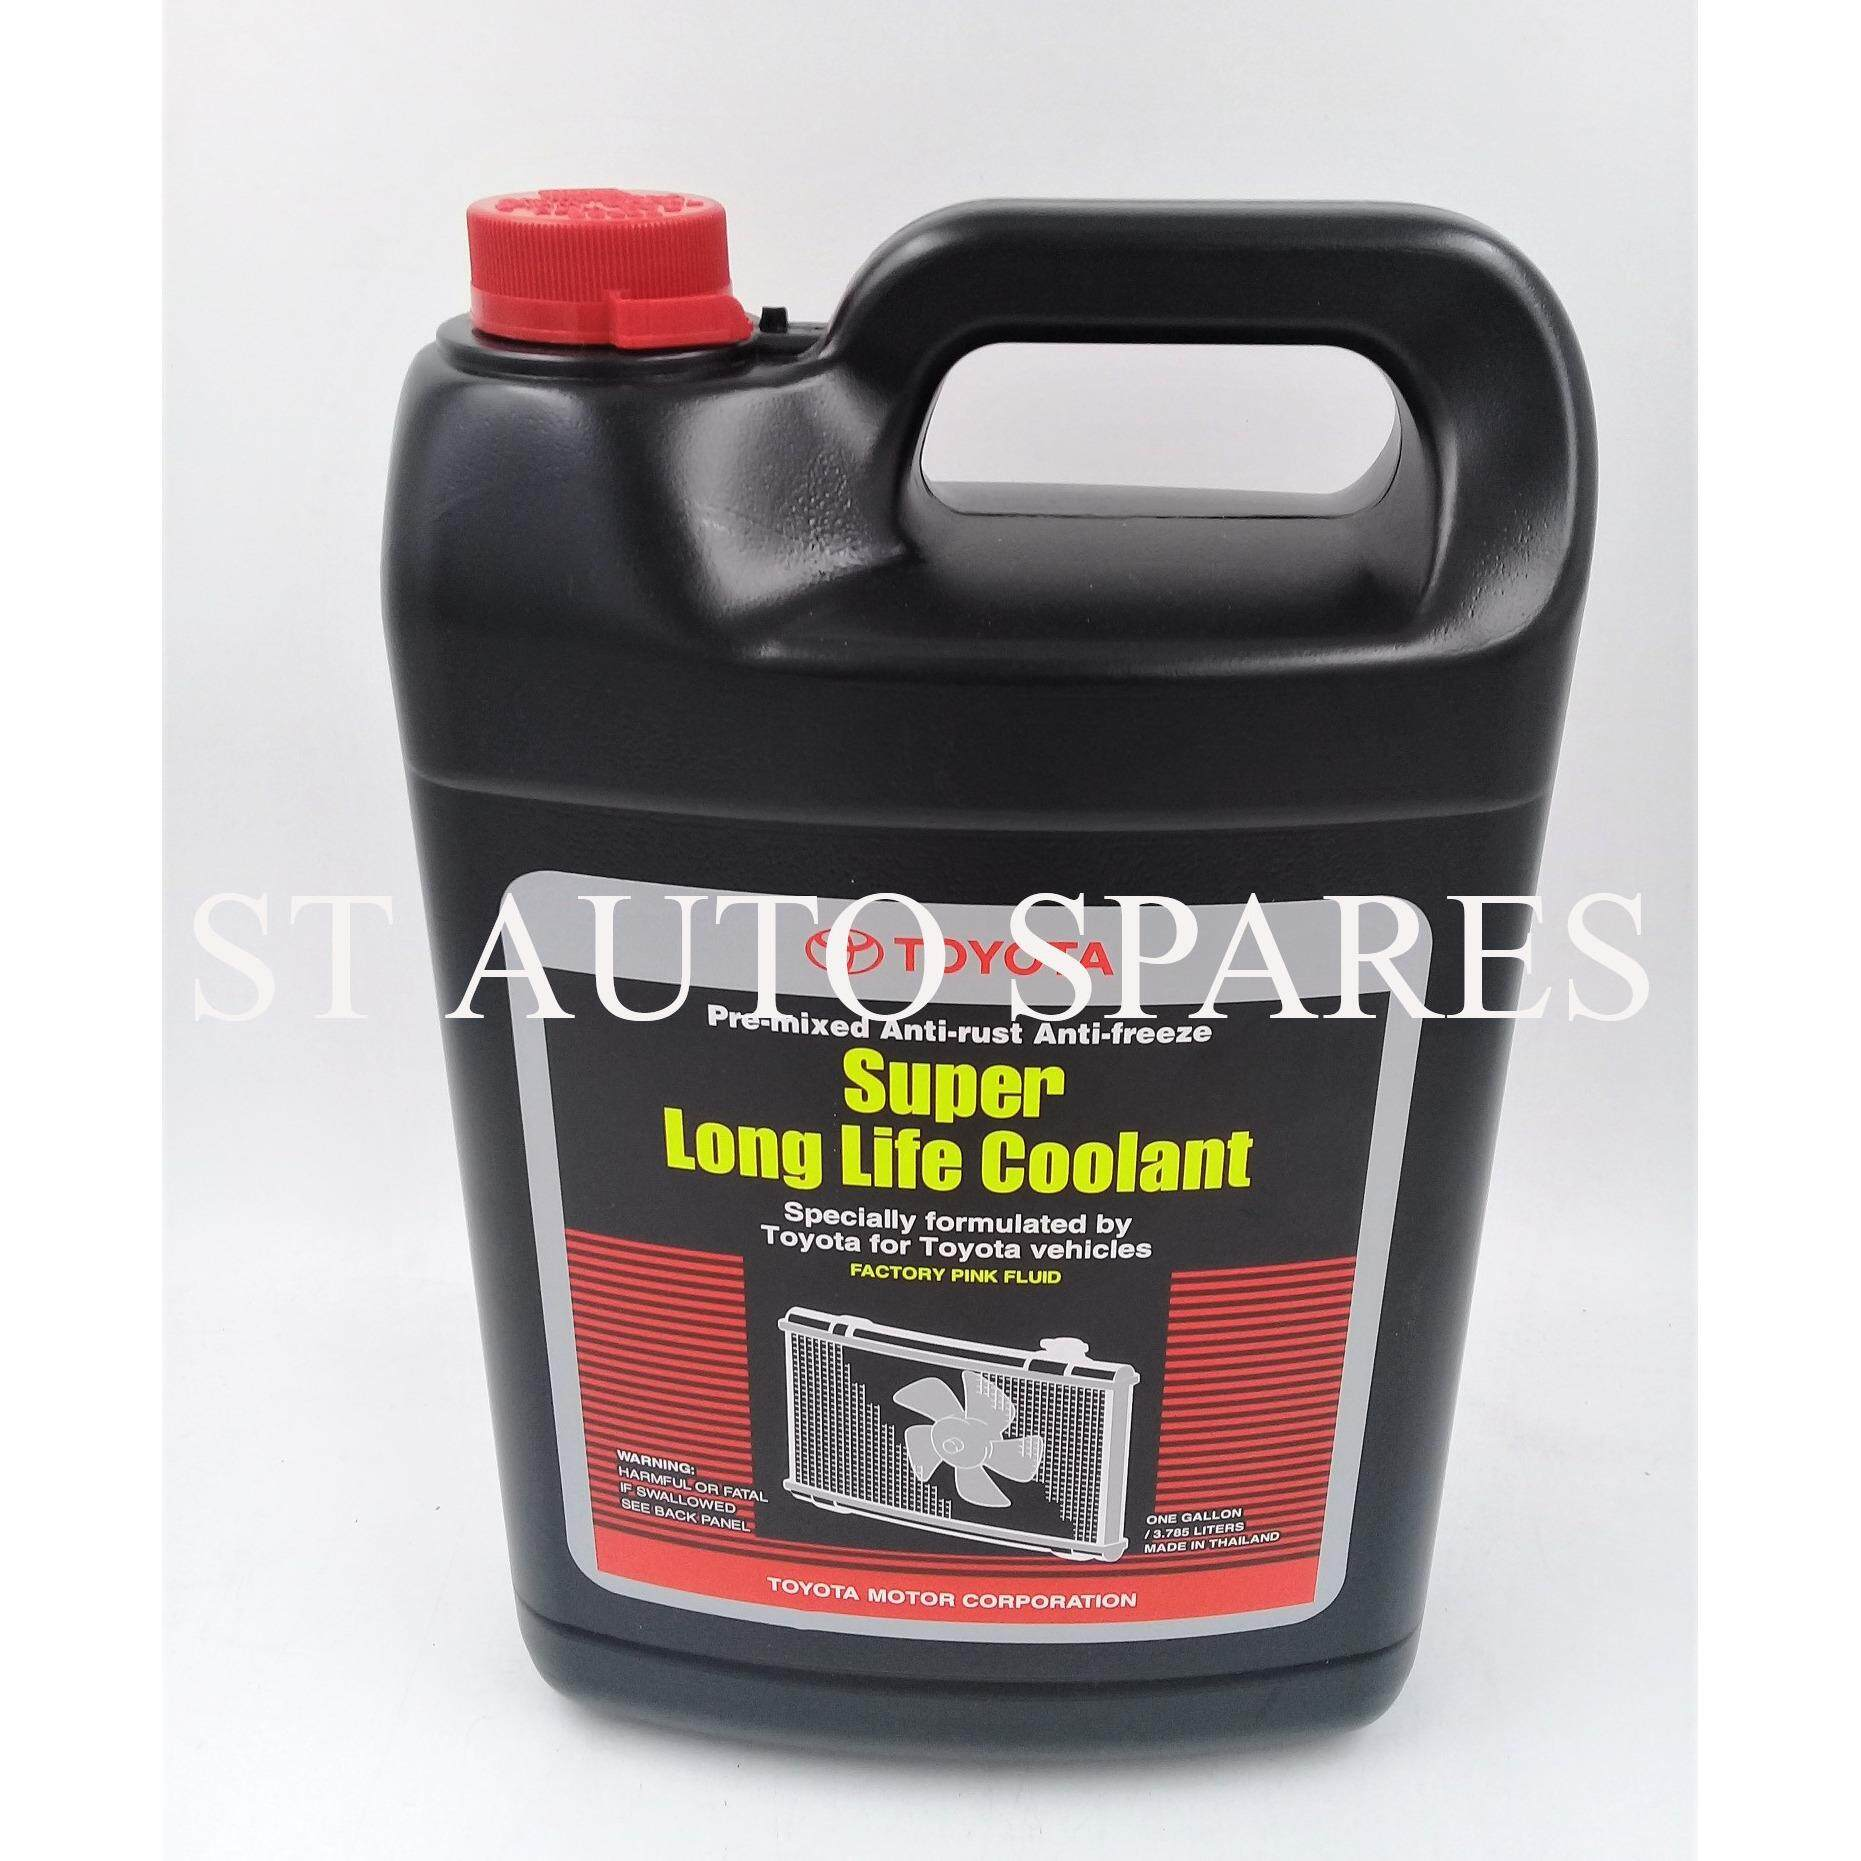 oli grand new avanza berapa liter veloz 2017 toyota automotive gadgets oils fluids price in malaysia best super long life coolant 1 gallon 3 785l 08889 80102